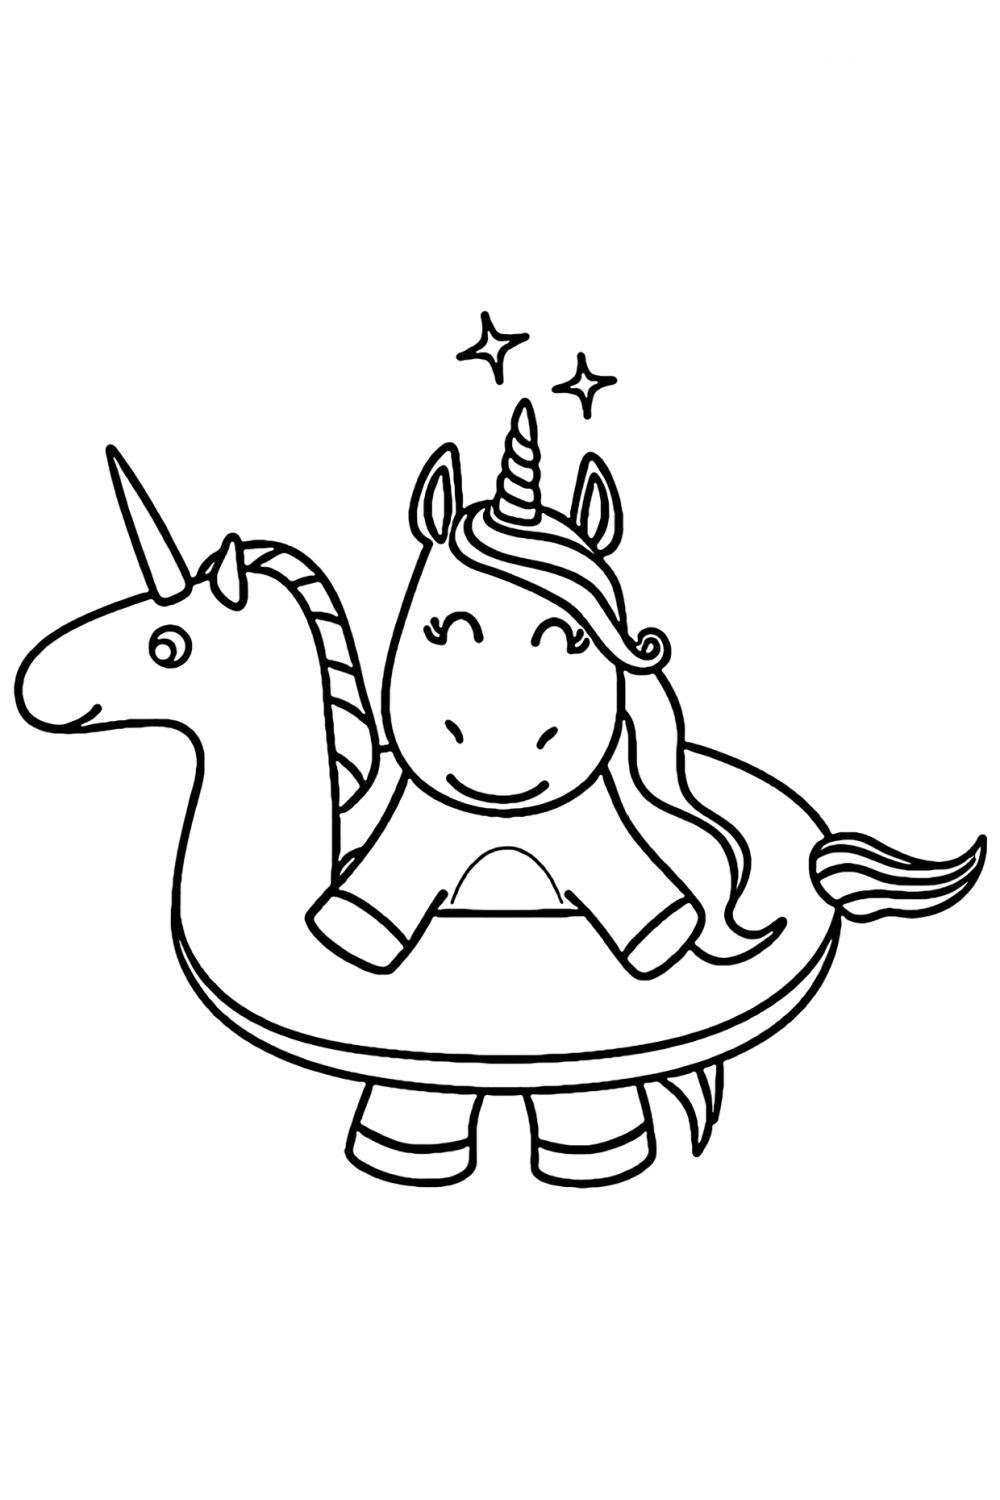 Unicorn Coloring Pages For Kids Cute Drawing With Crayons